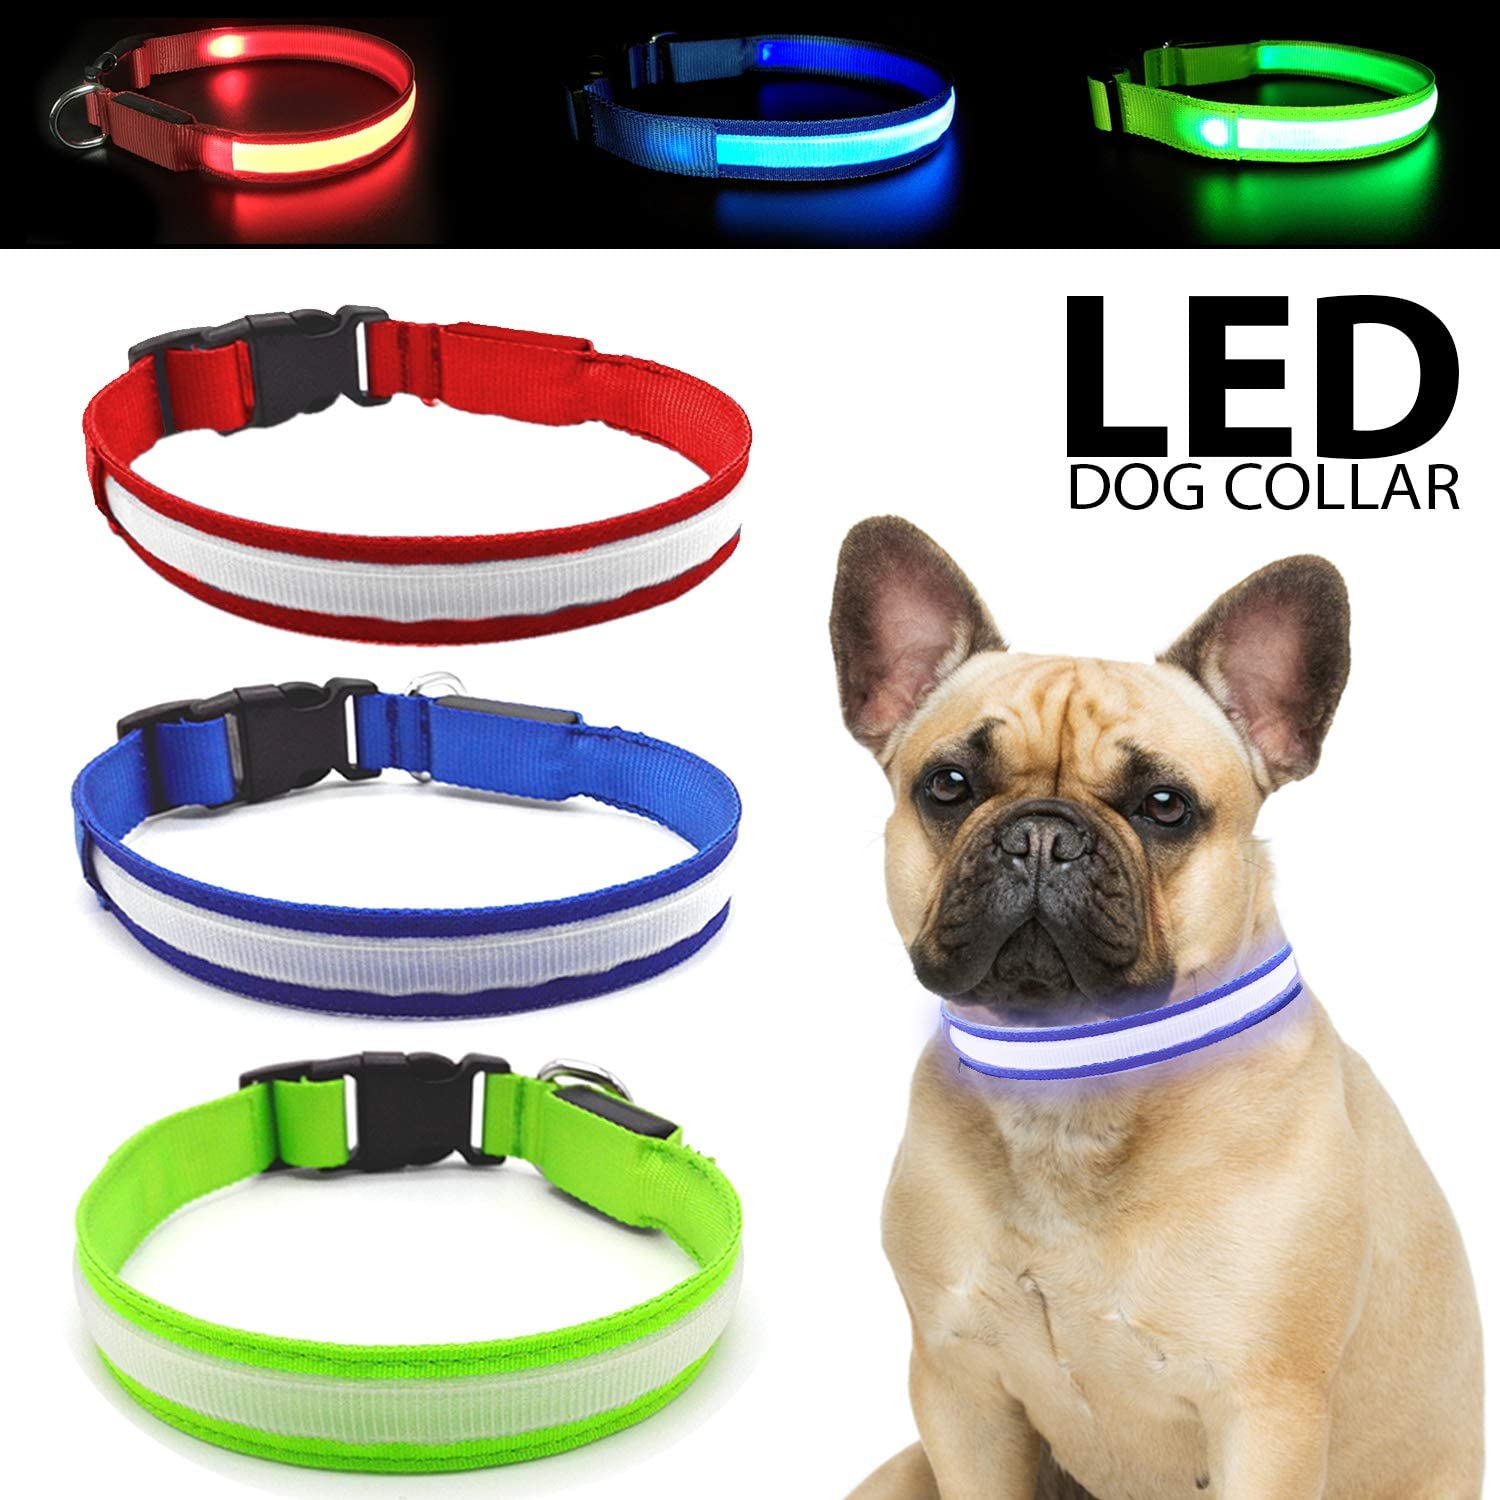 Talis LED Light-Up Dog Collar (Micro-USB, New Upgrade 2019) Improved Pet Safety &Visibility at Night Waterproof Collar Fits for Small Medium Large Dogs 3 Flashing Modes